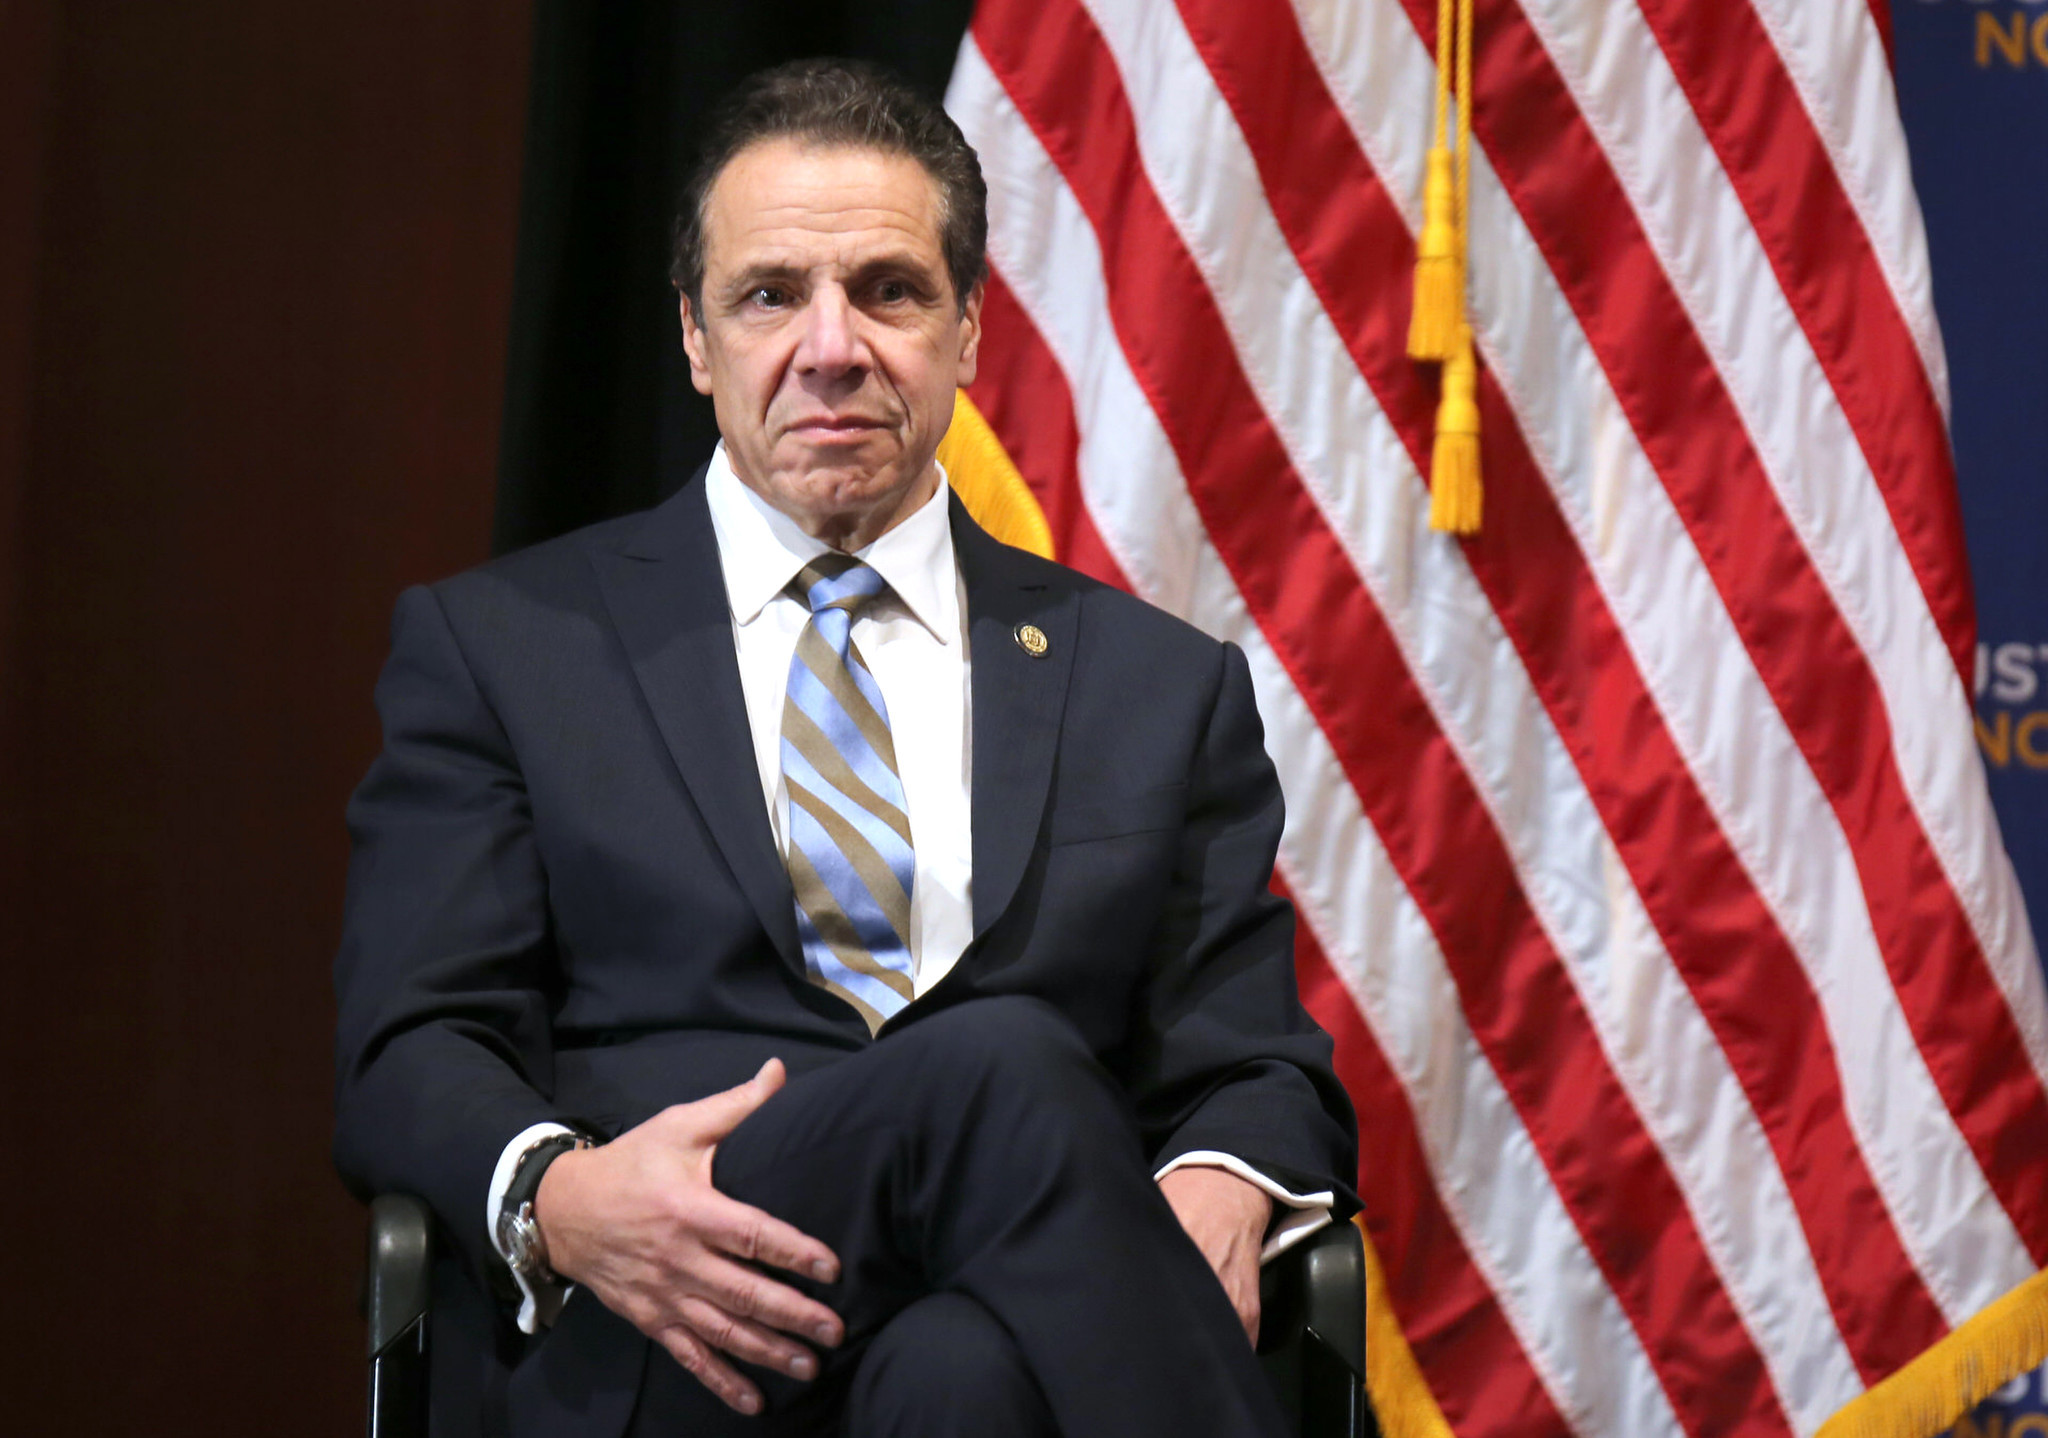 N.Y. Gov. Cuomo accuses Trump administration of playing politics with billions in healthcare grants